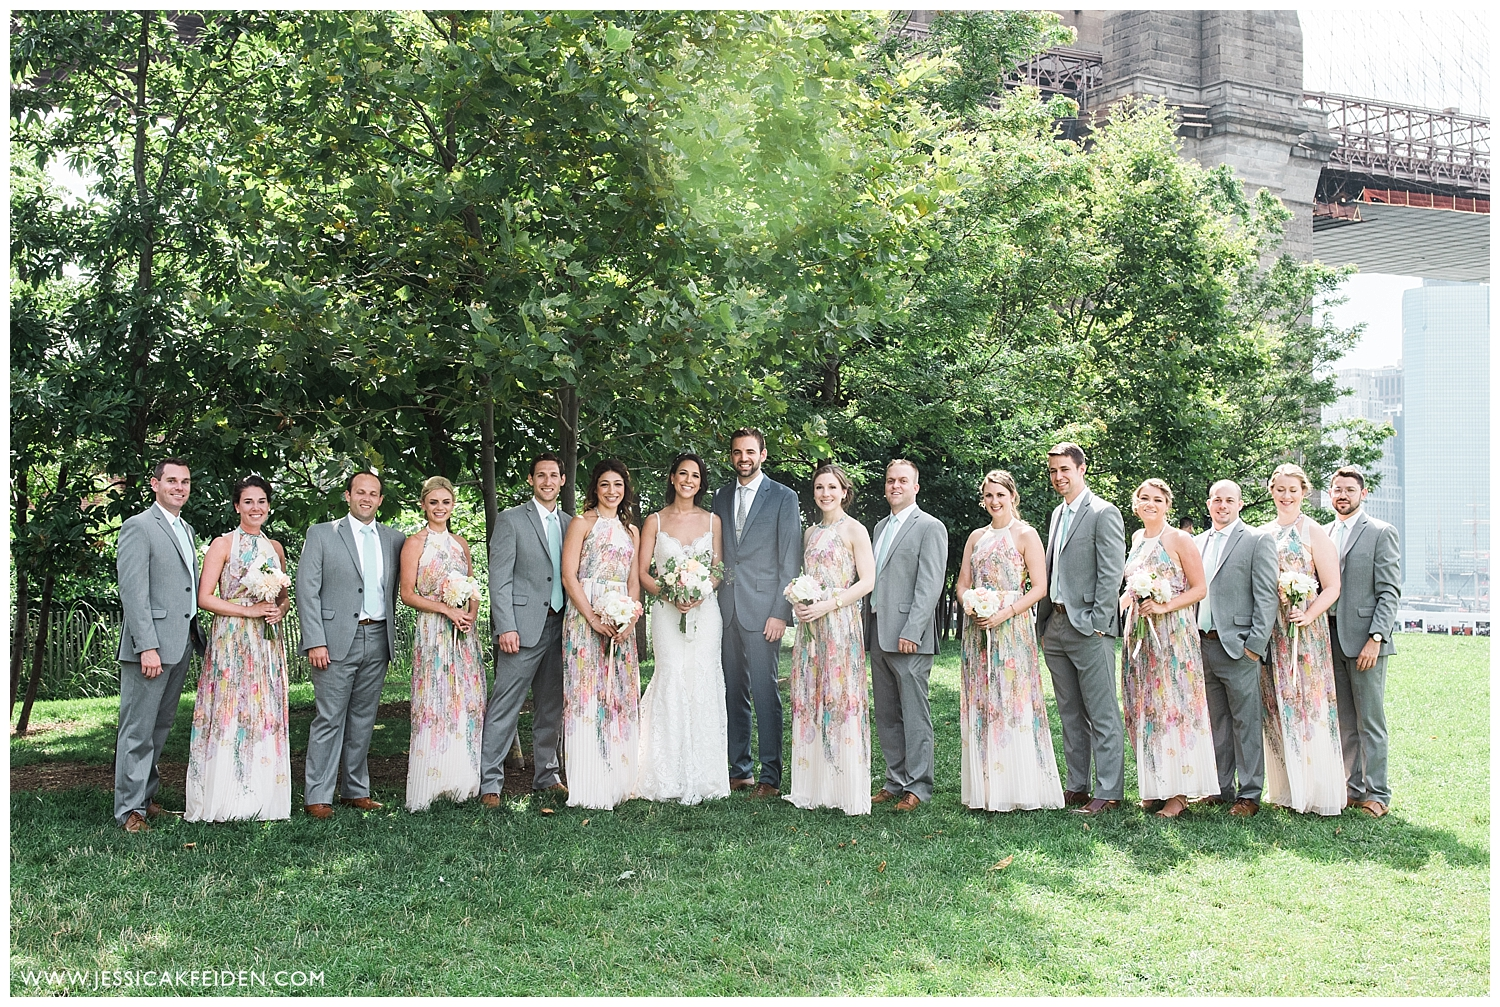 Renee and Jon's Brooklyn wedding